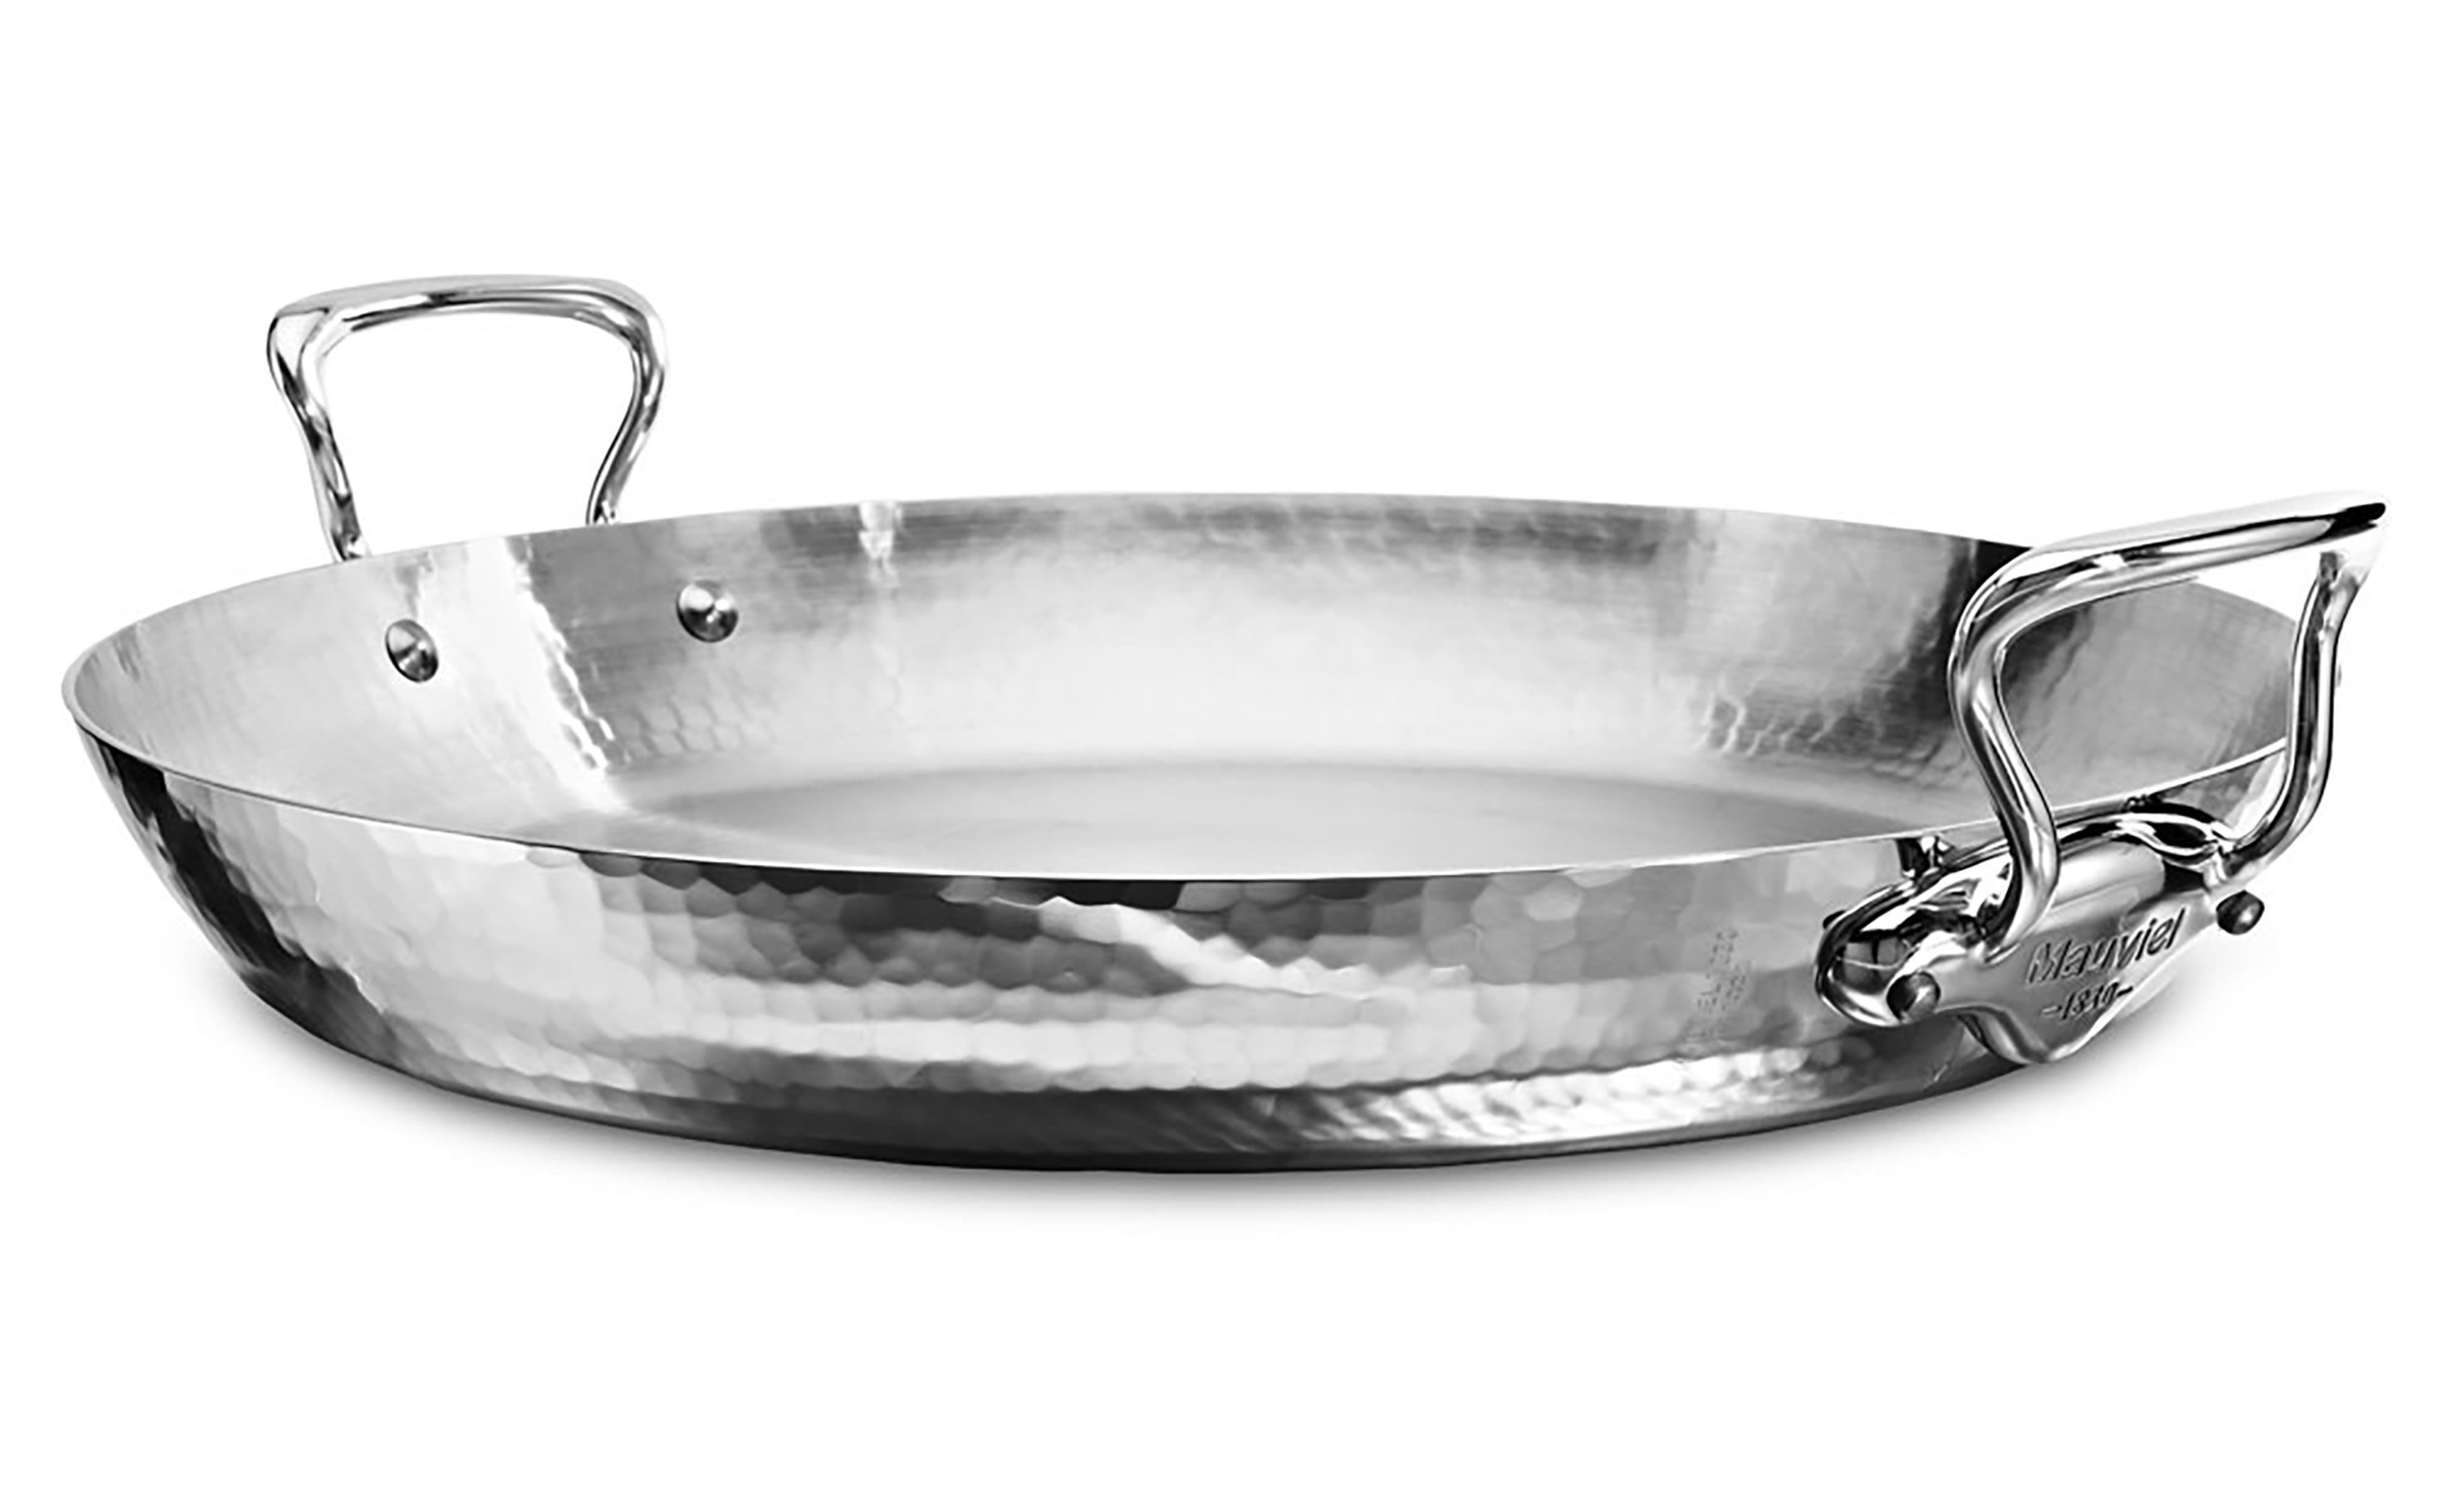 mauviel mu0027elite hammered stainless steel paella pan 157inch cutlery and more - Mauviel